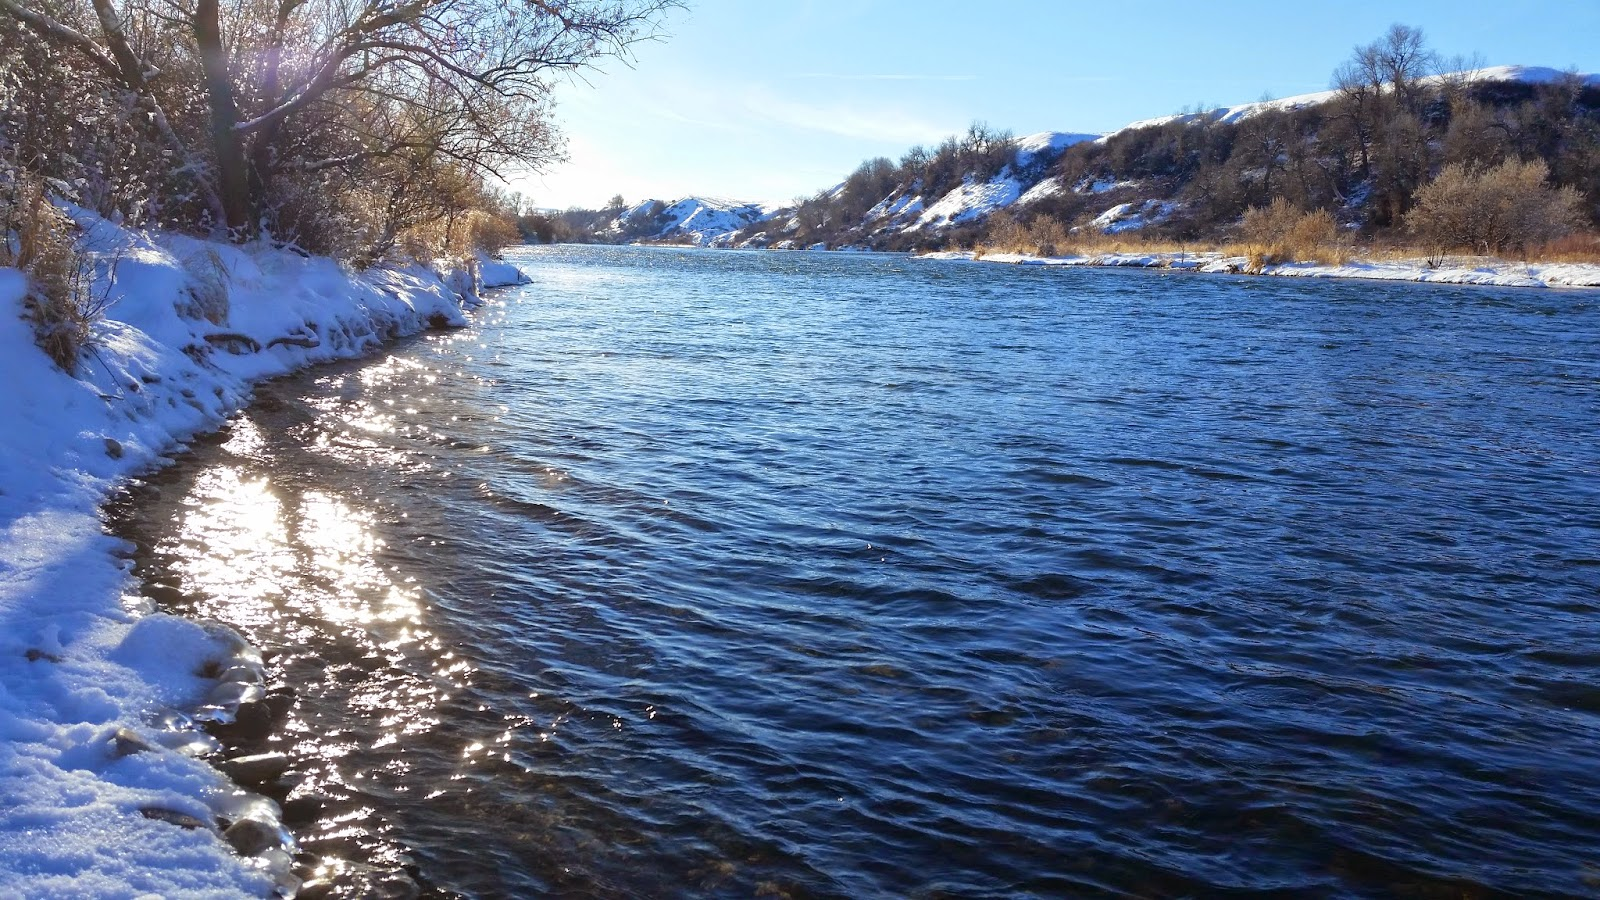 Jon baiocchi fly fishing news the bighorn river mt for Bighorn river fly fishing